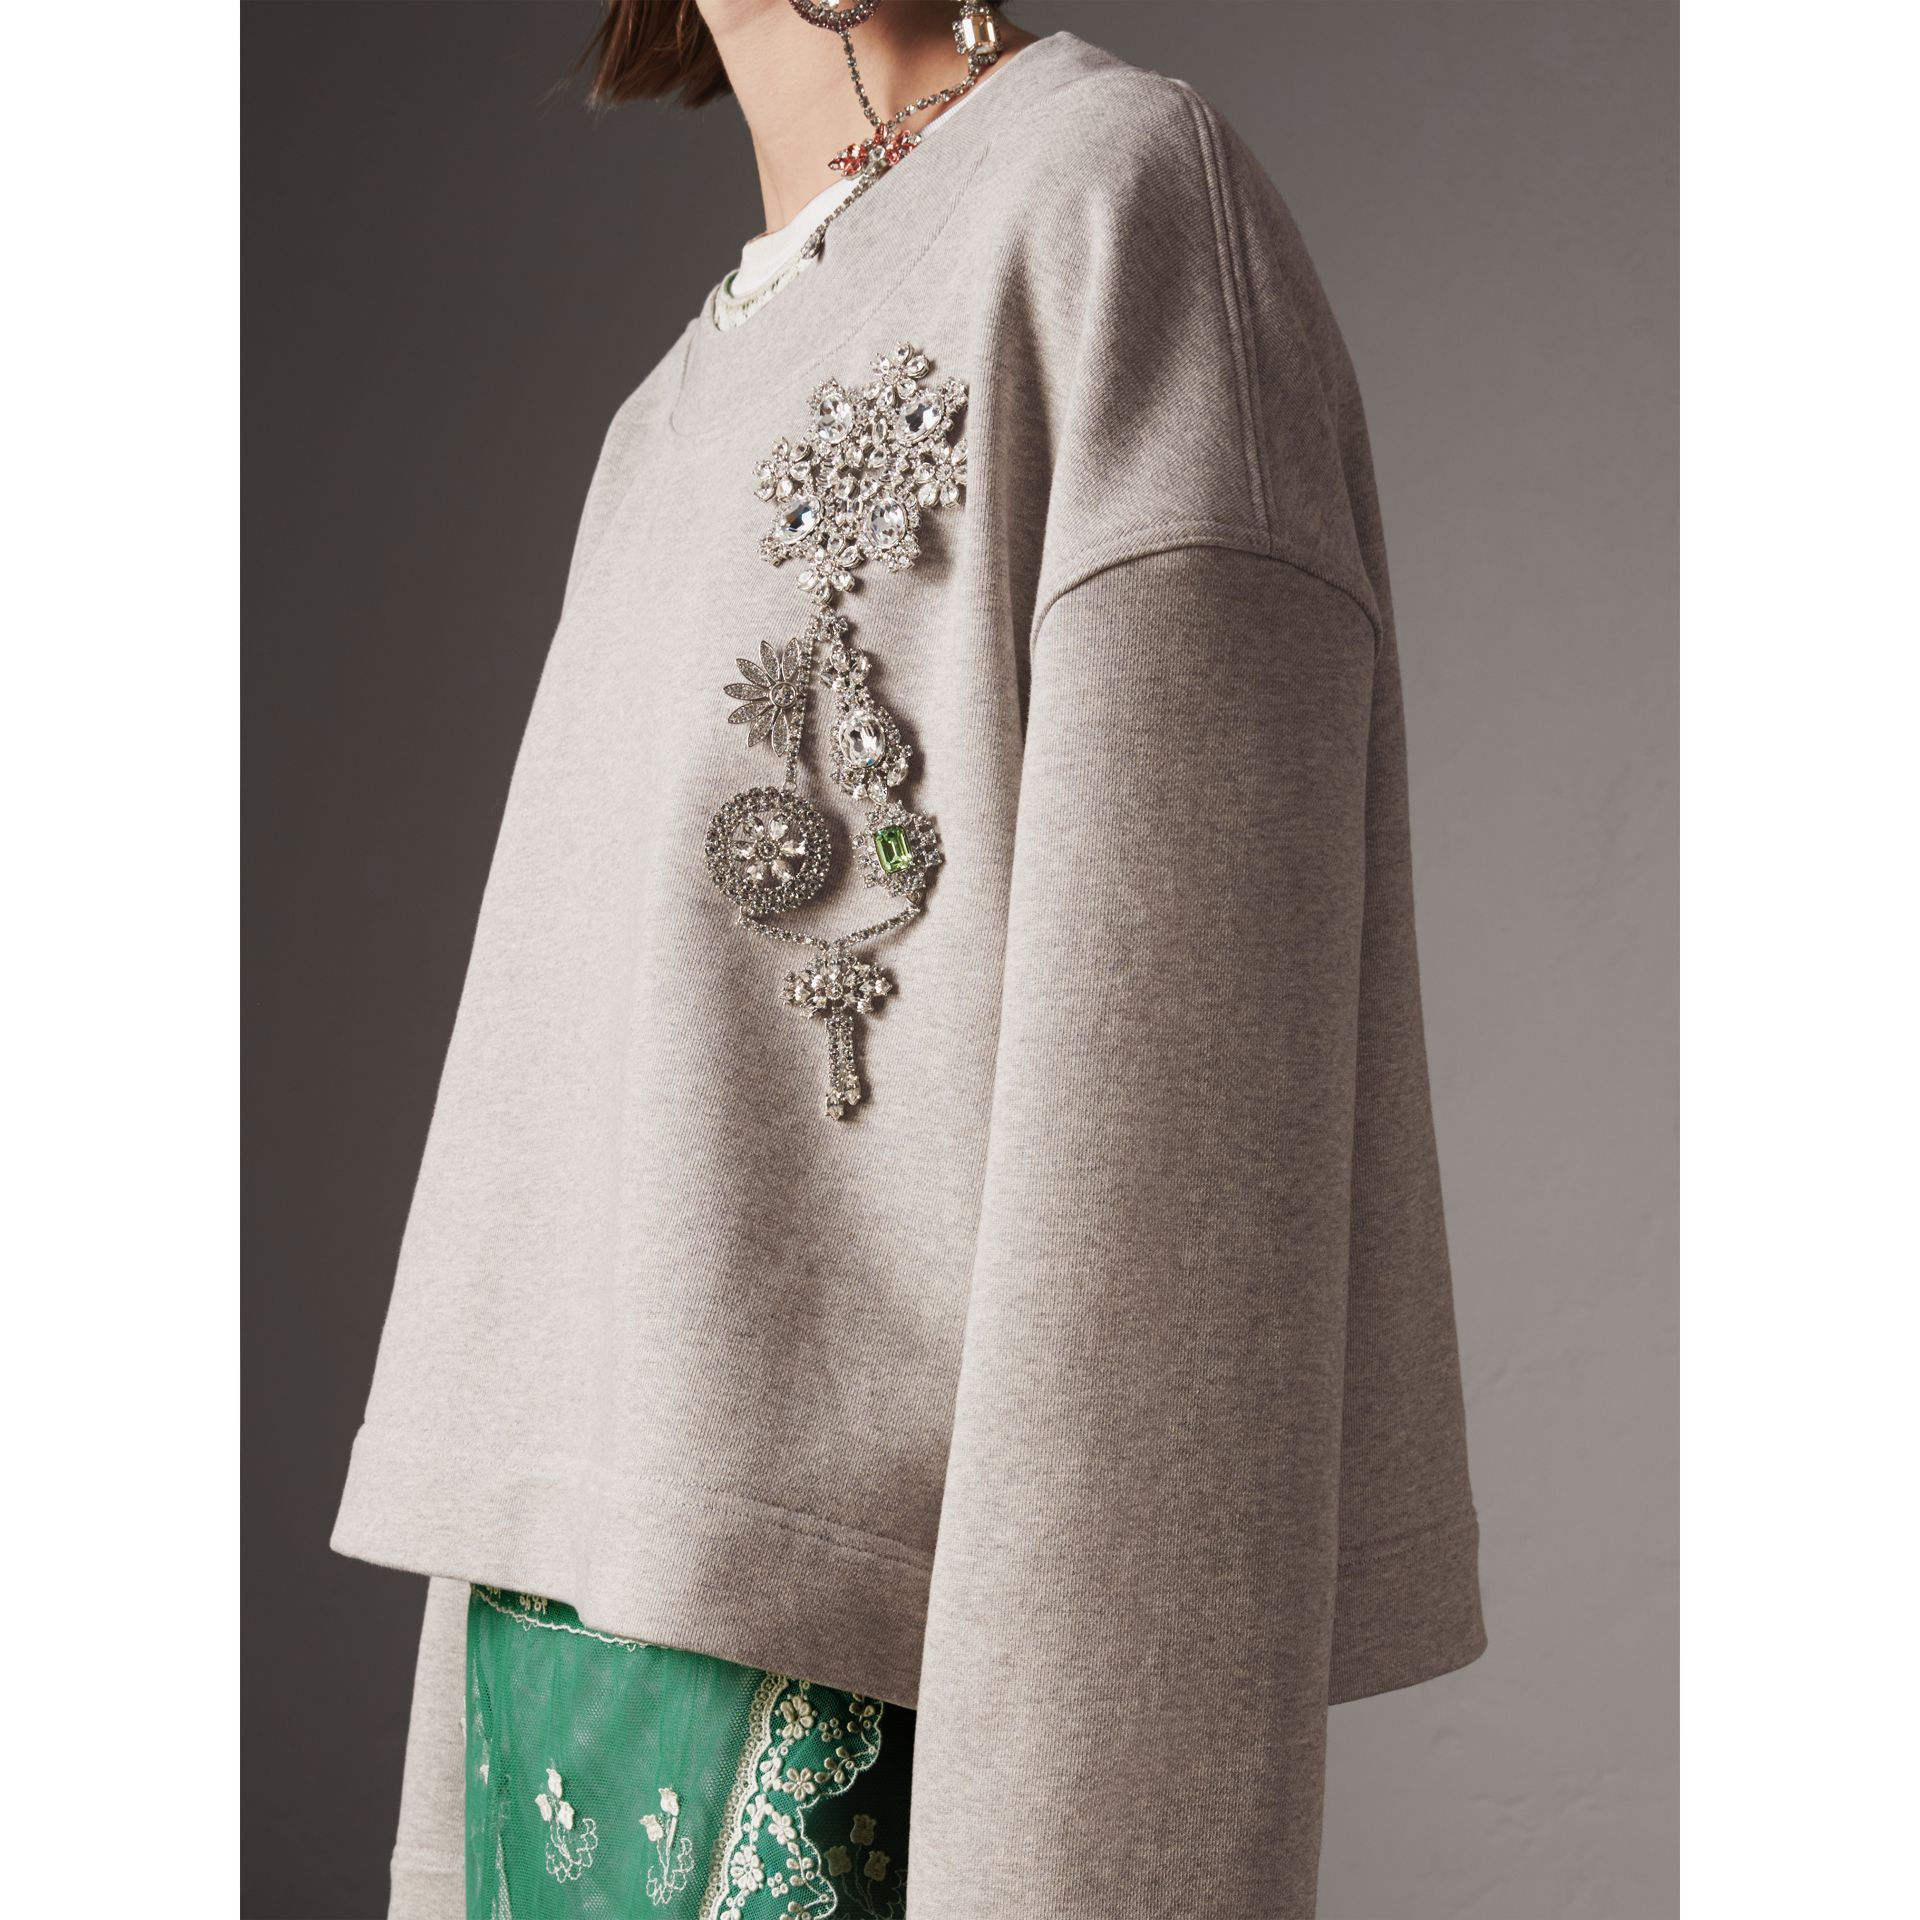 Cropped Sweatshirt with Crystal Brooch in Light Grey Melange - Women | Burberry Singapore - gallery image 1